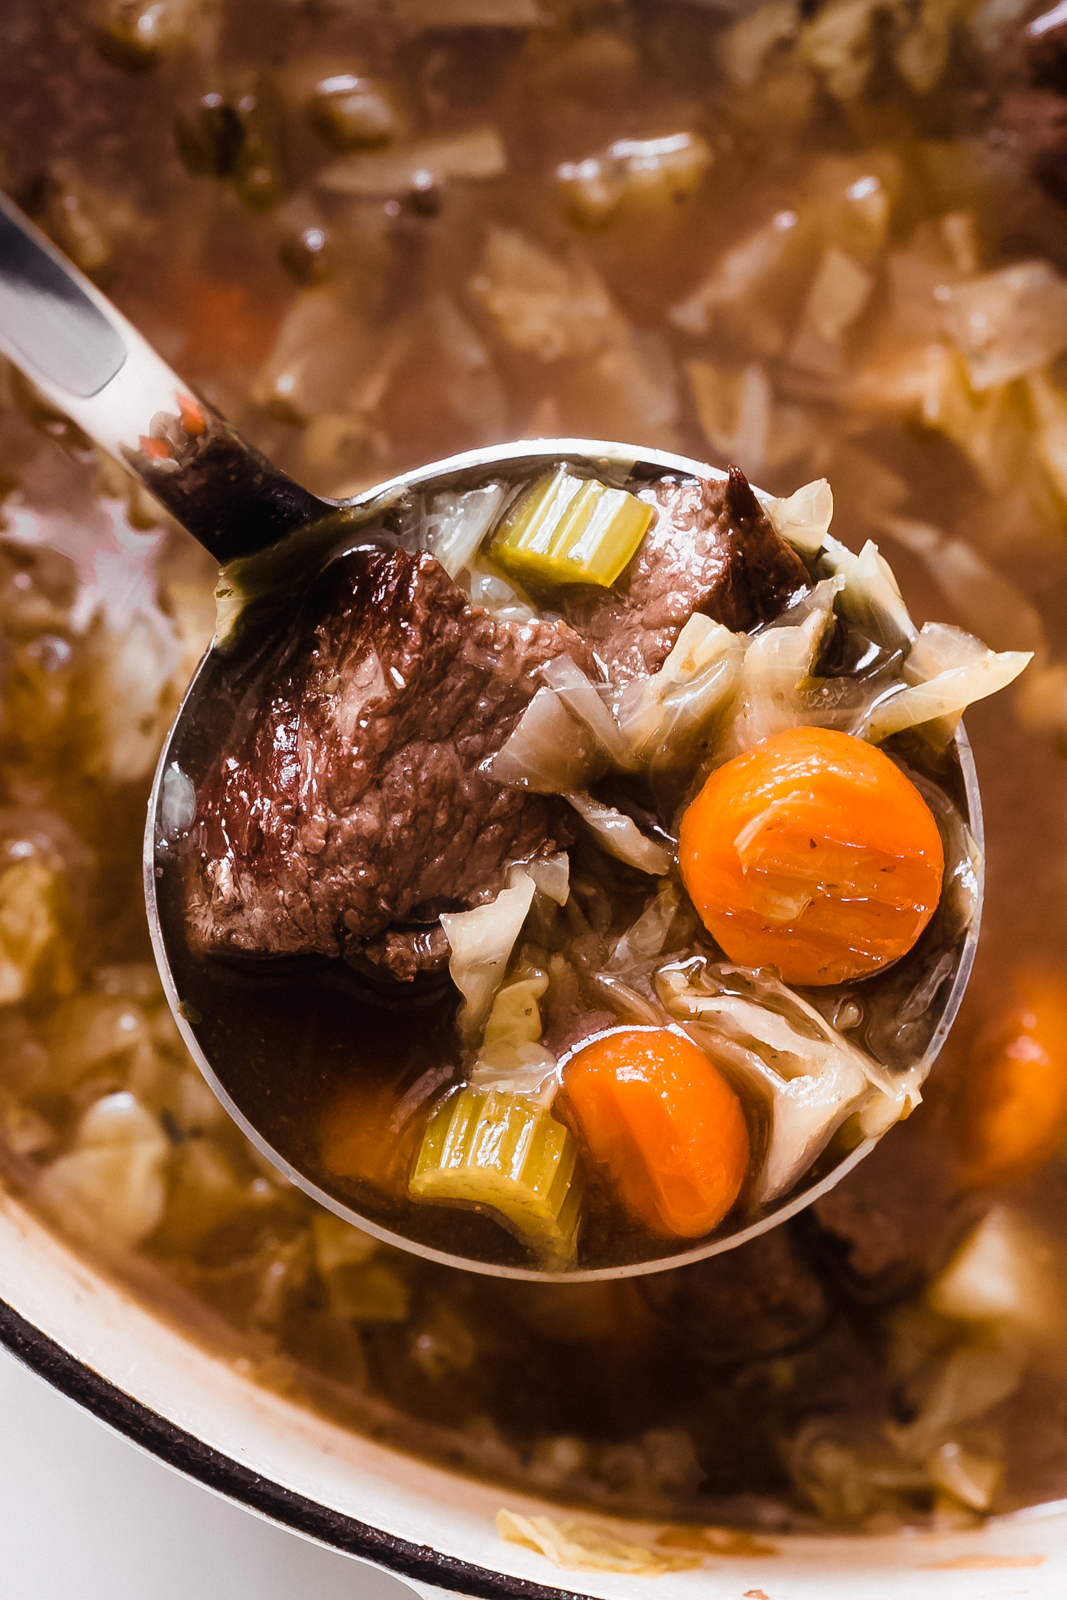 ladle with soup showing carrots, celery, cabbage and stew meat